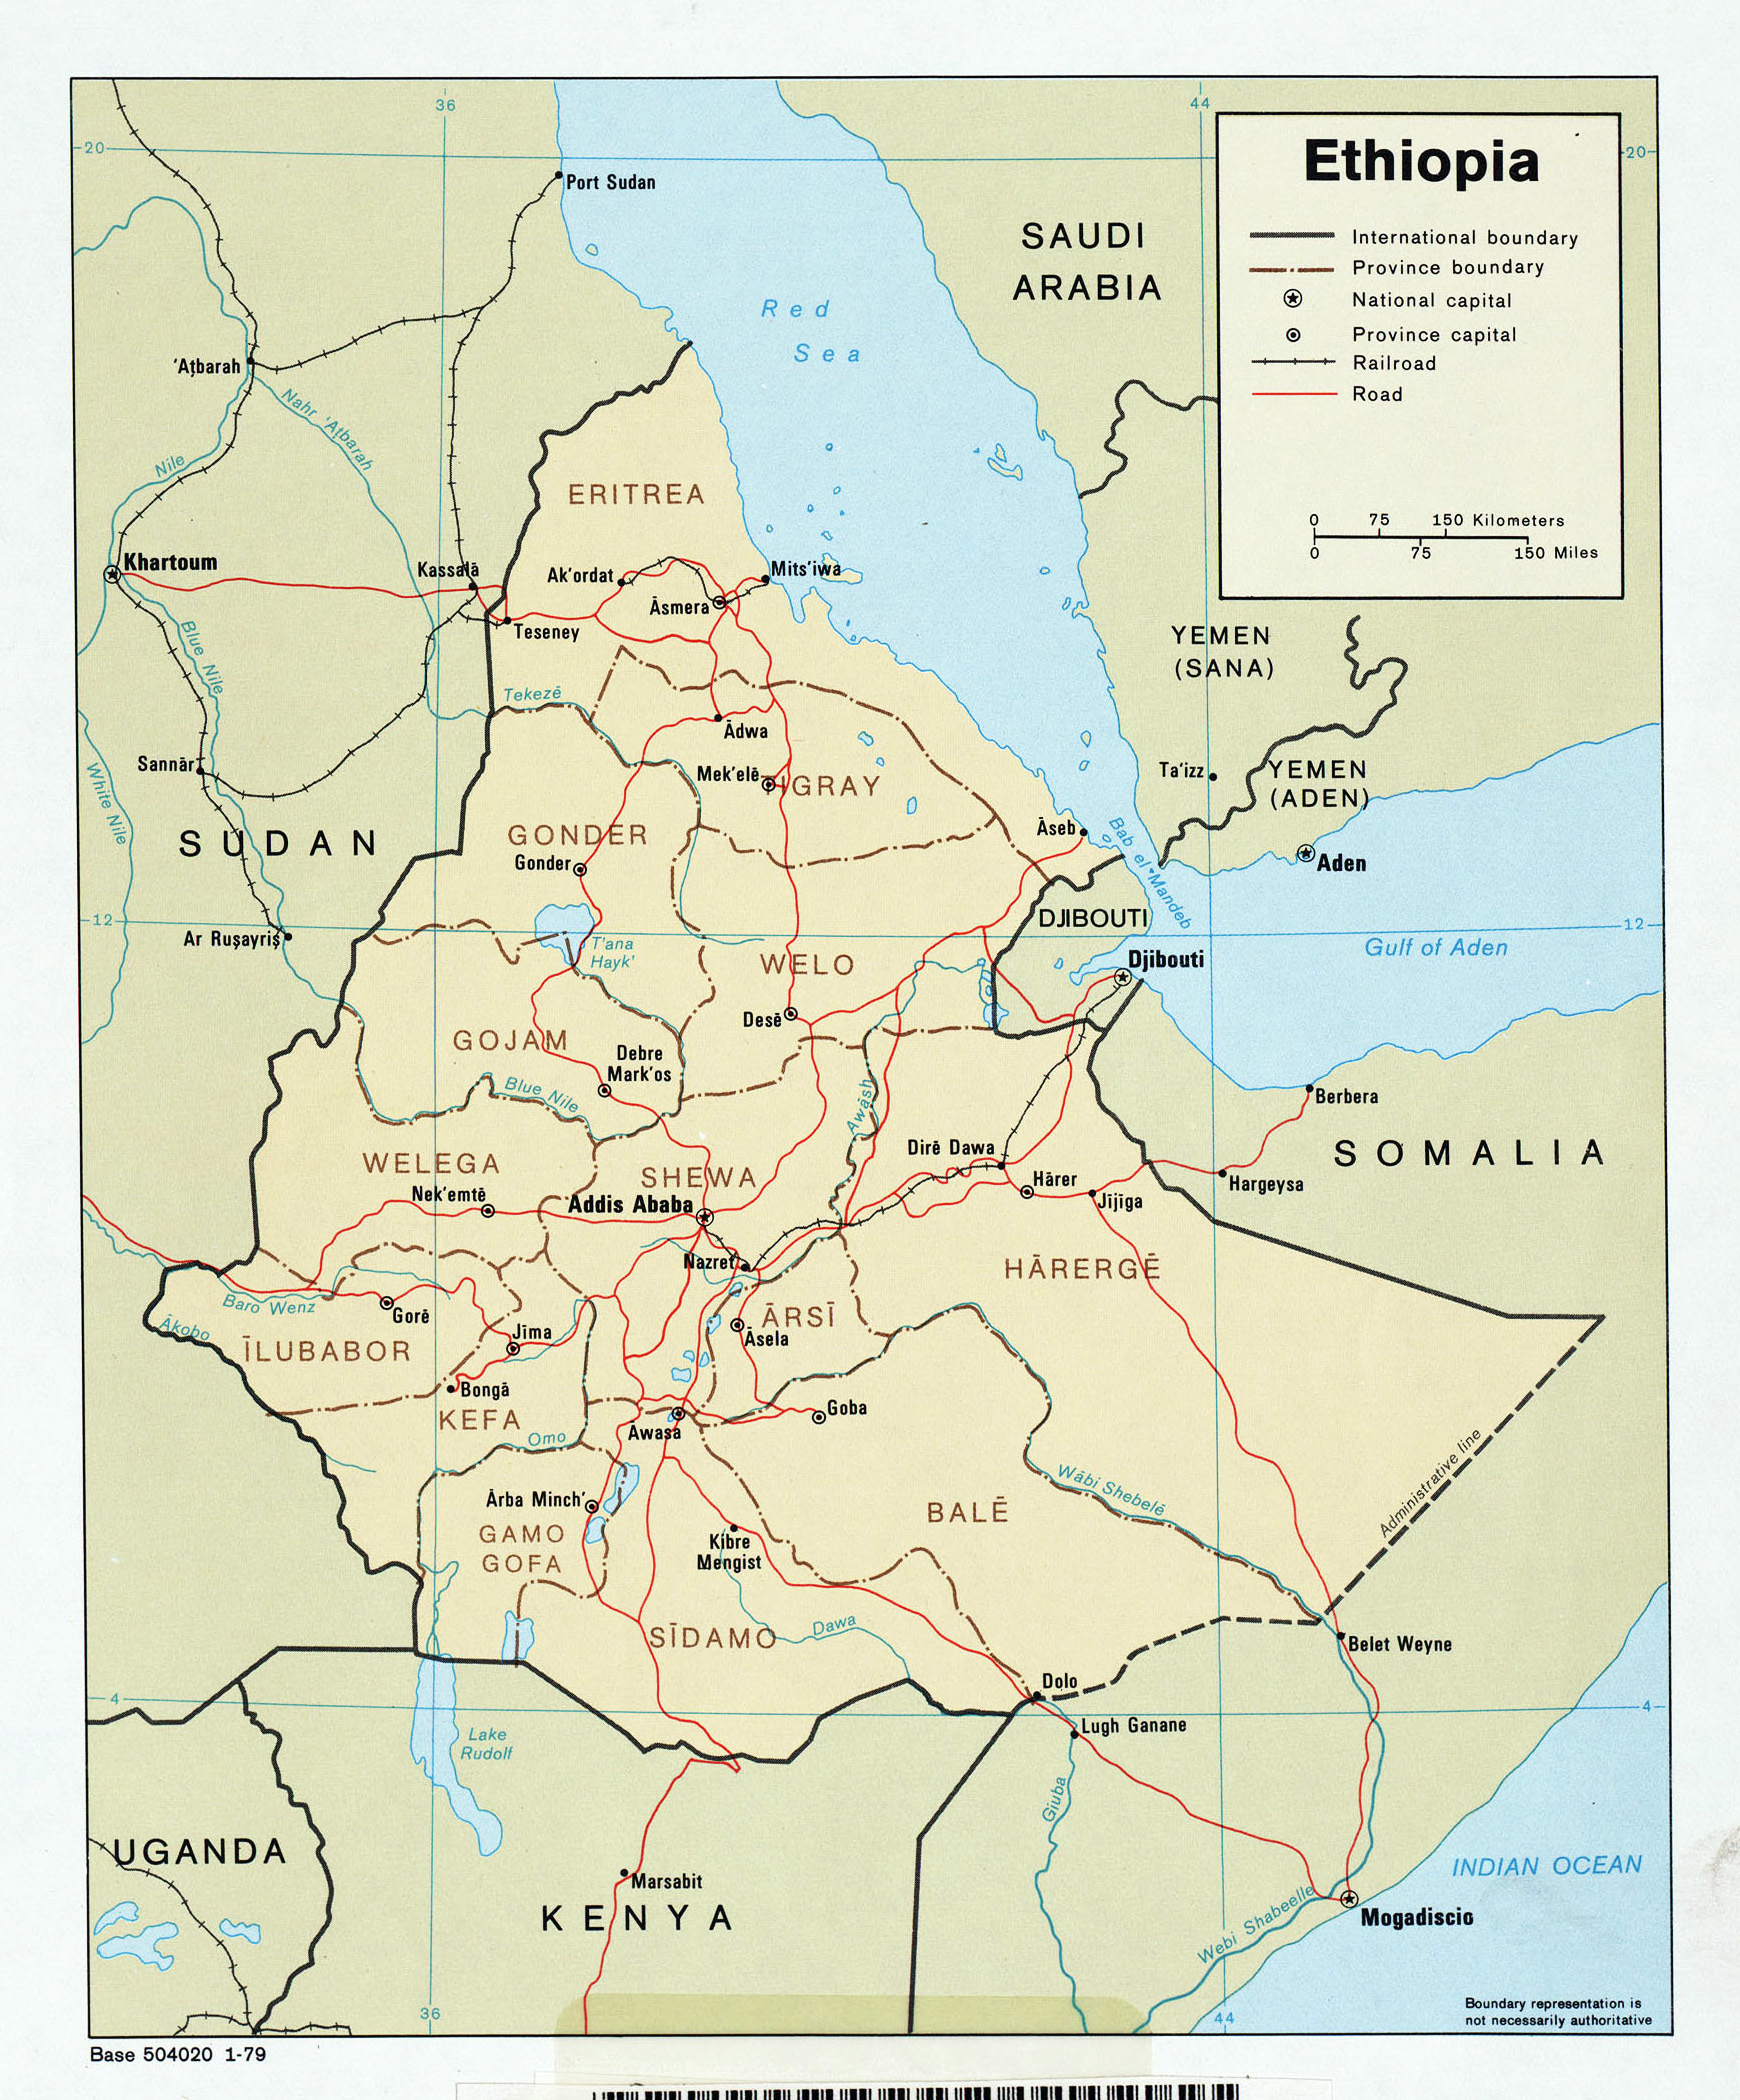 Detailed political and administrative map of Ethiopia with major